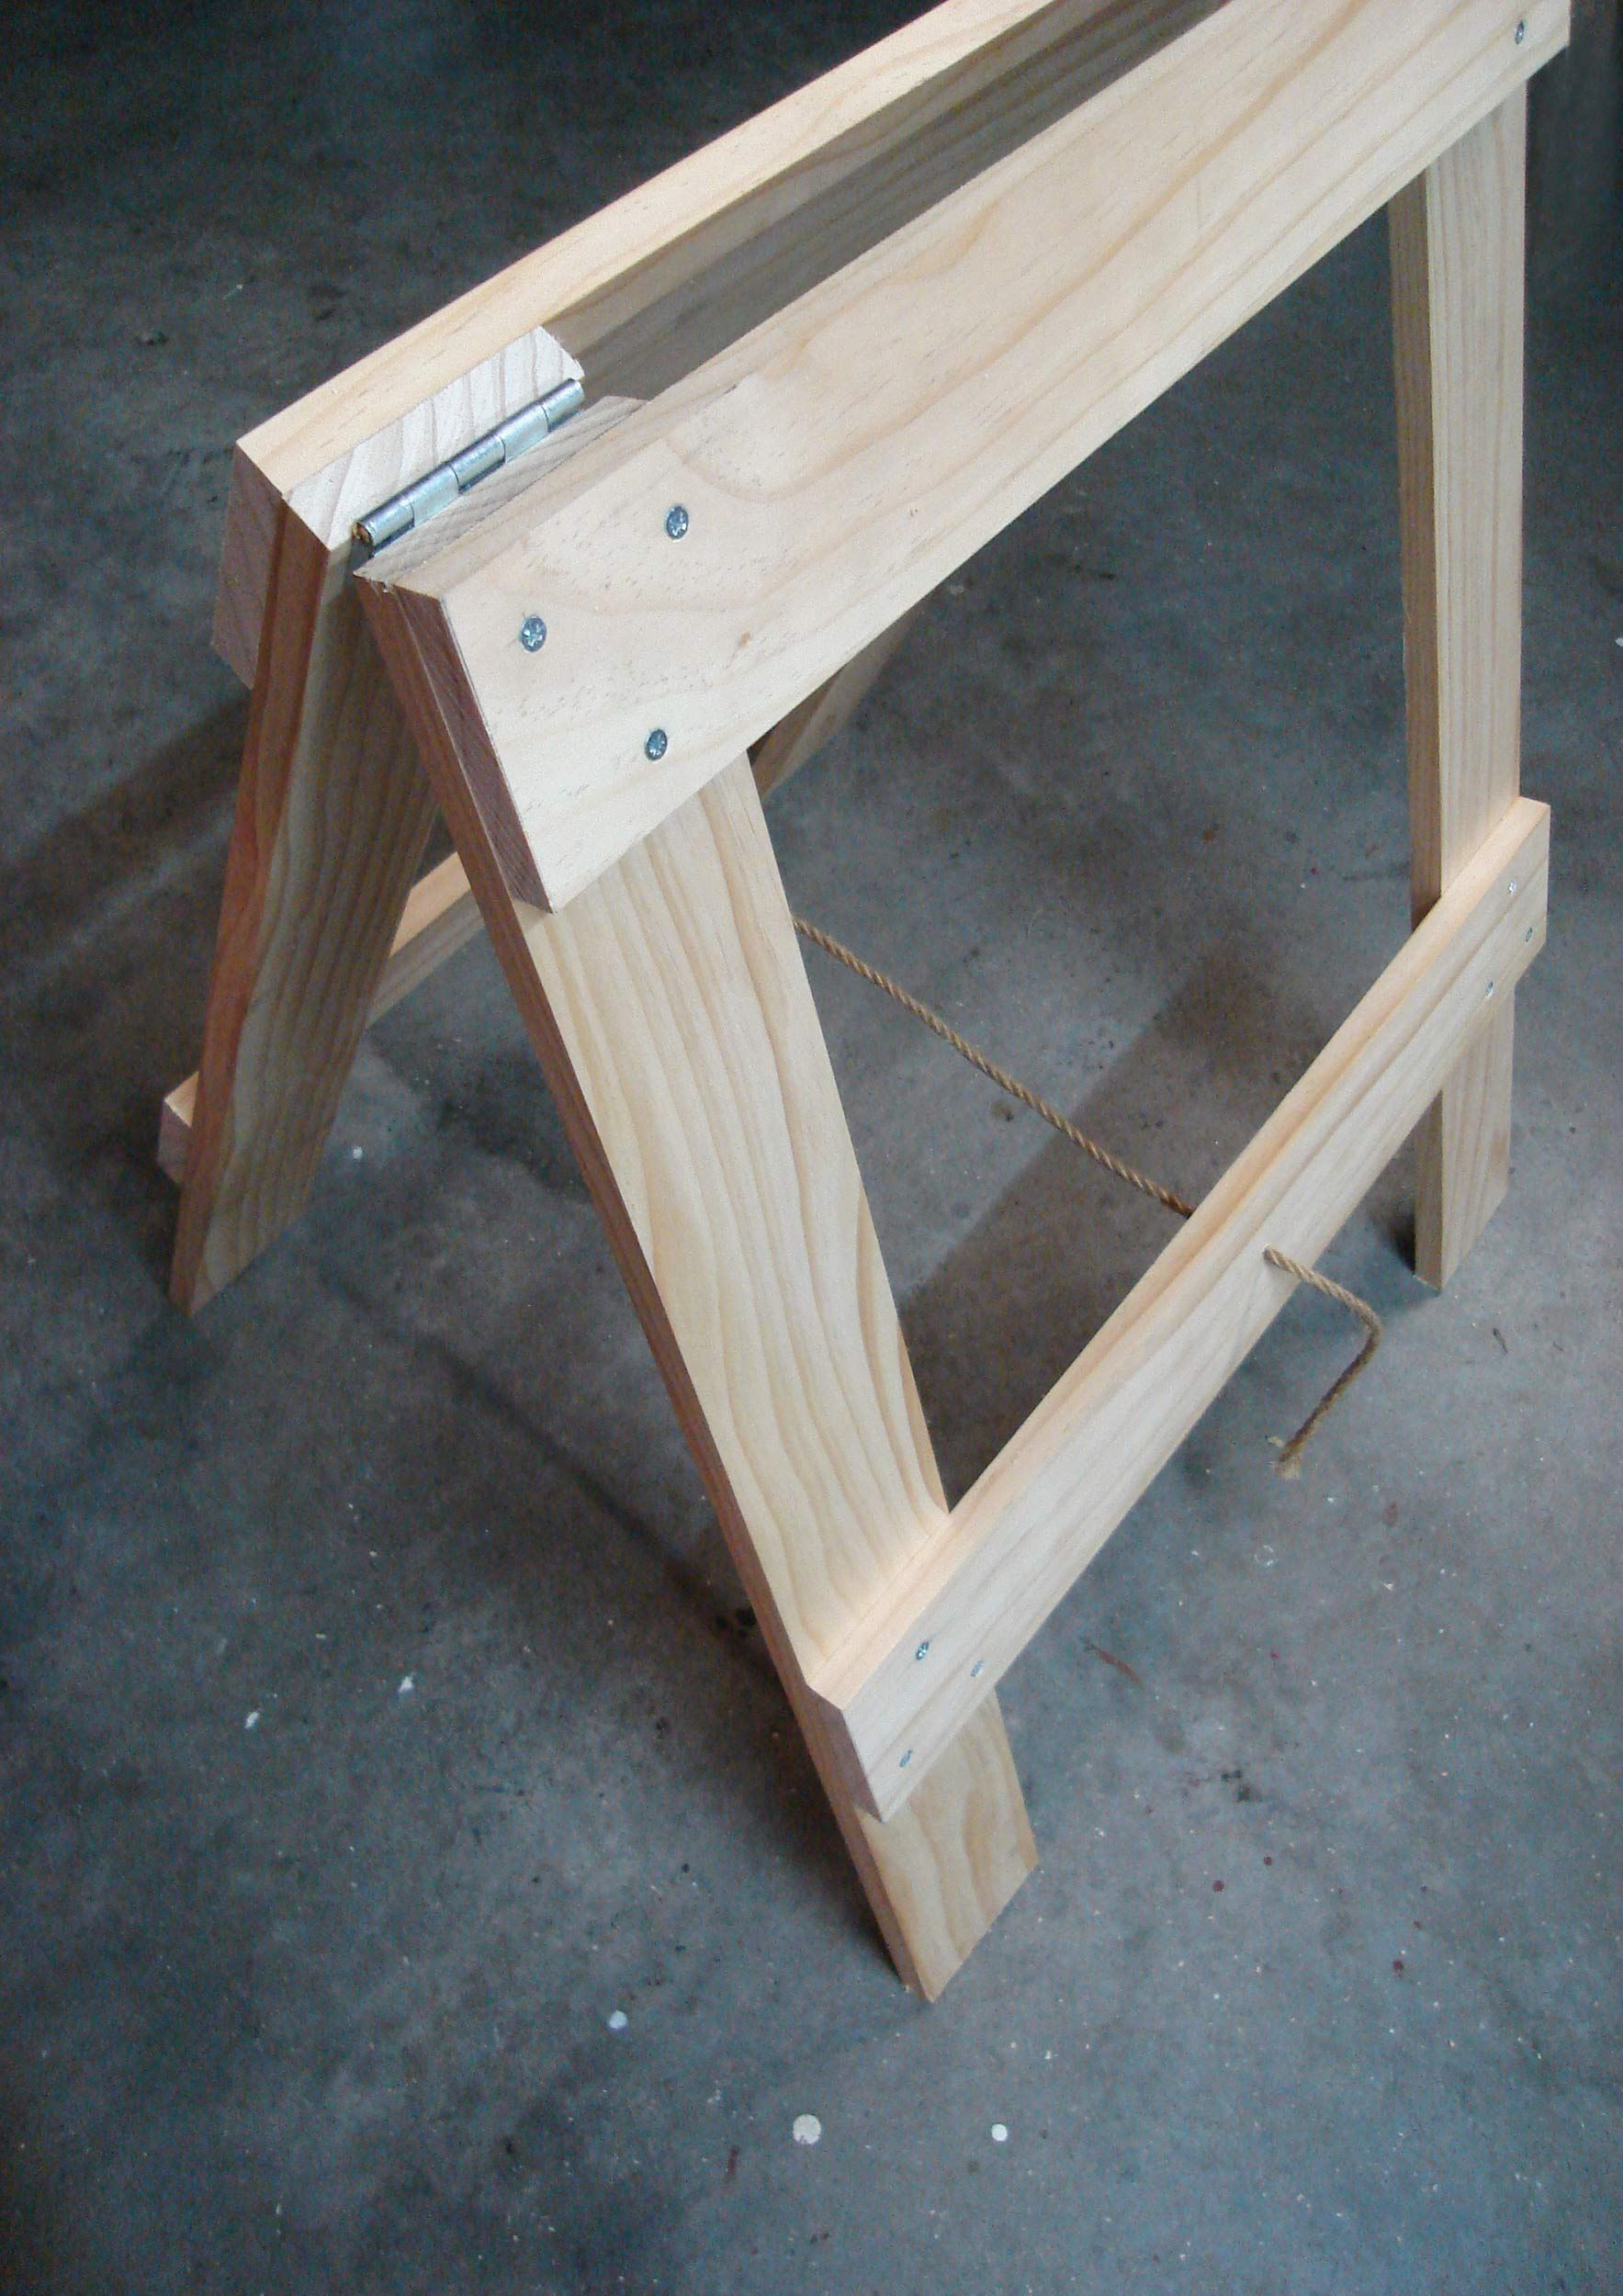 Woodworking Table Ideas Pin By Holly G On Craft Entrepreneur Ideas Pinterest